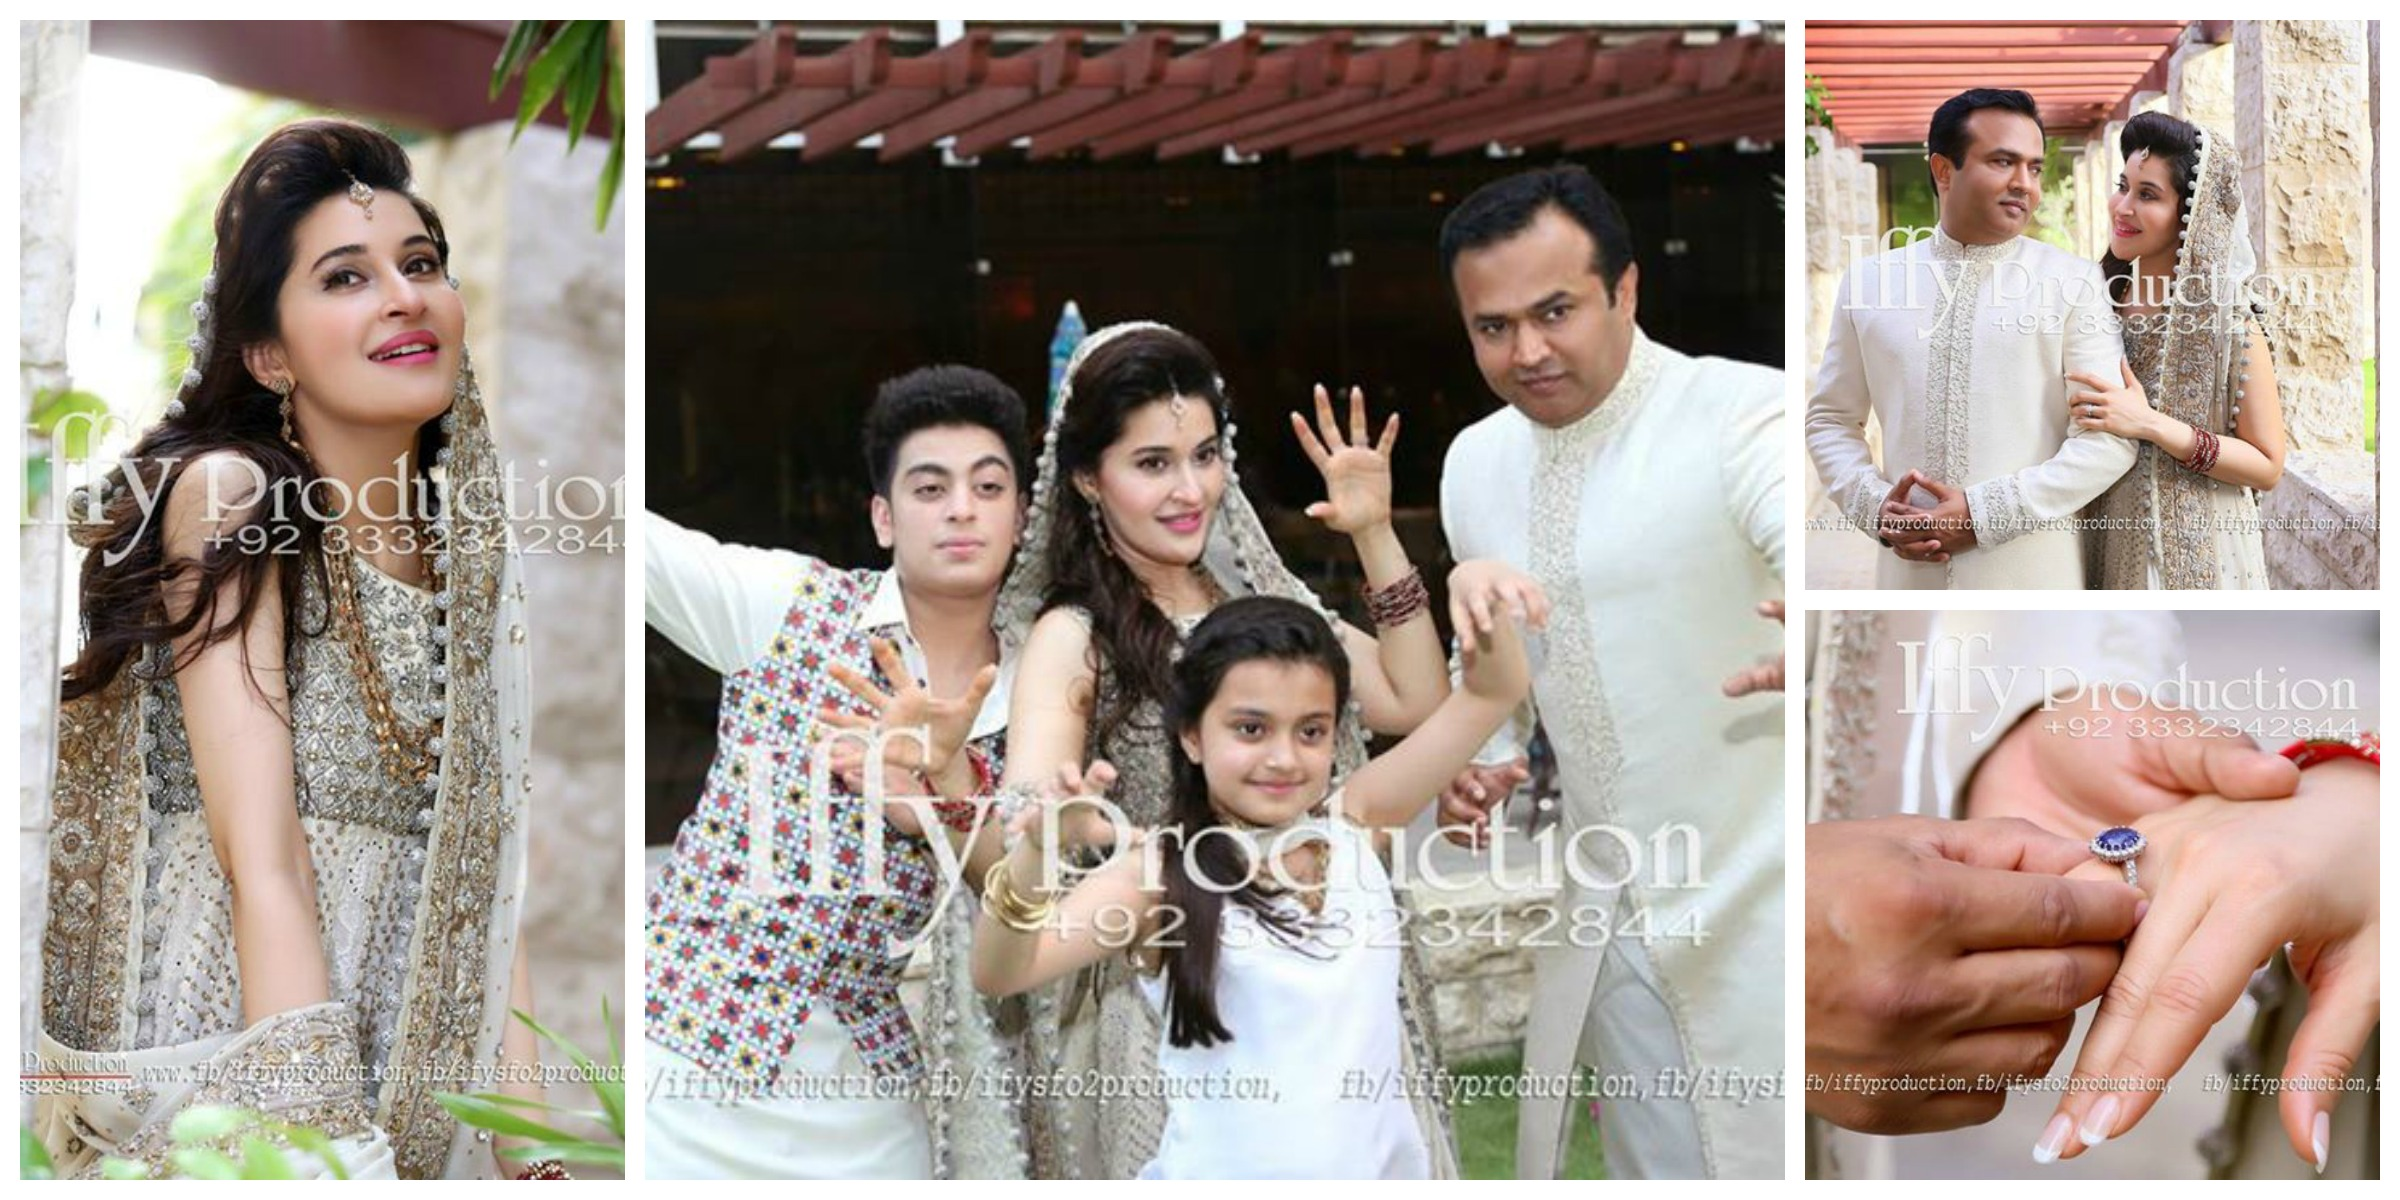 shaista lodhi's second husband